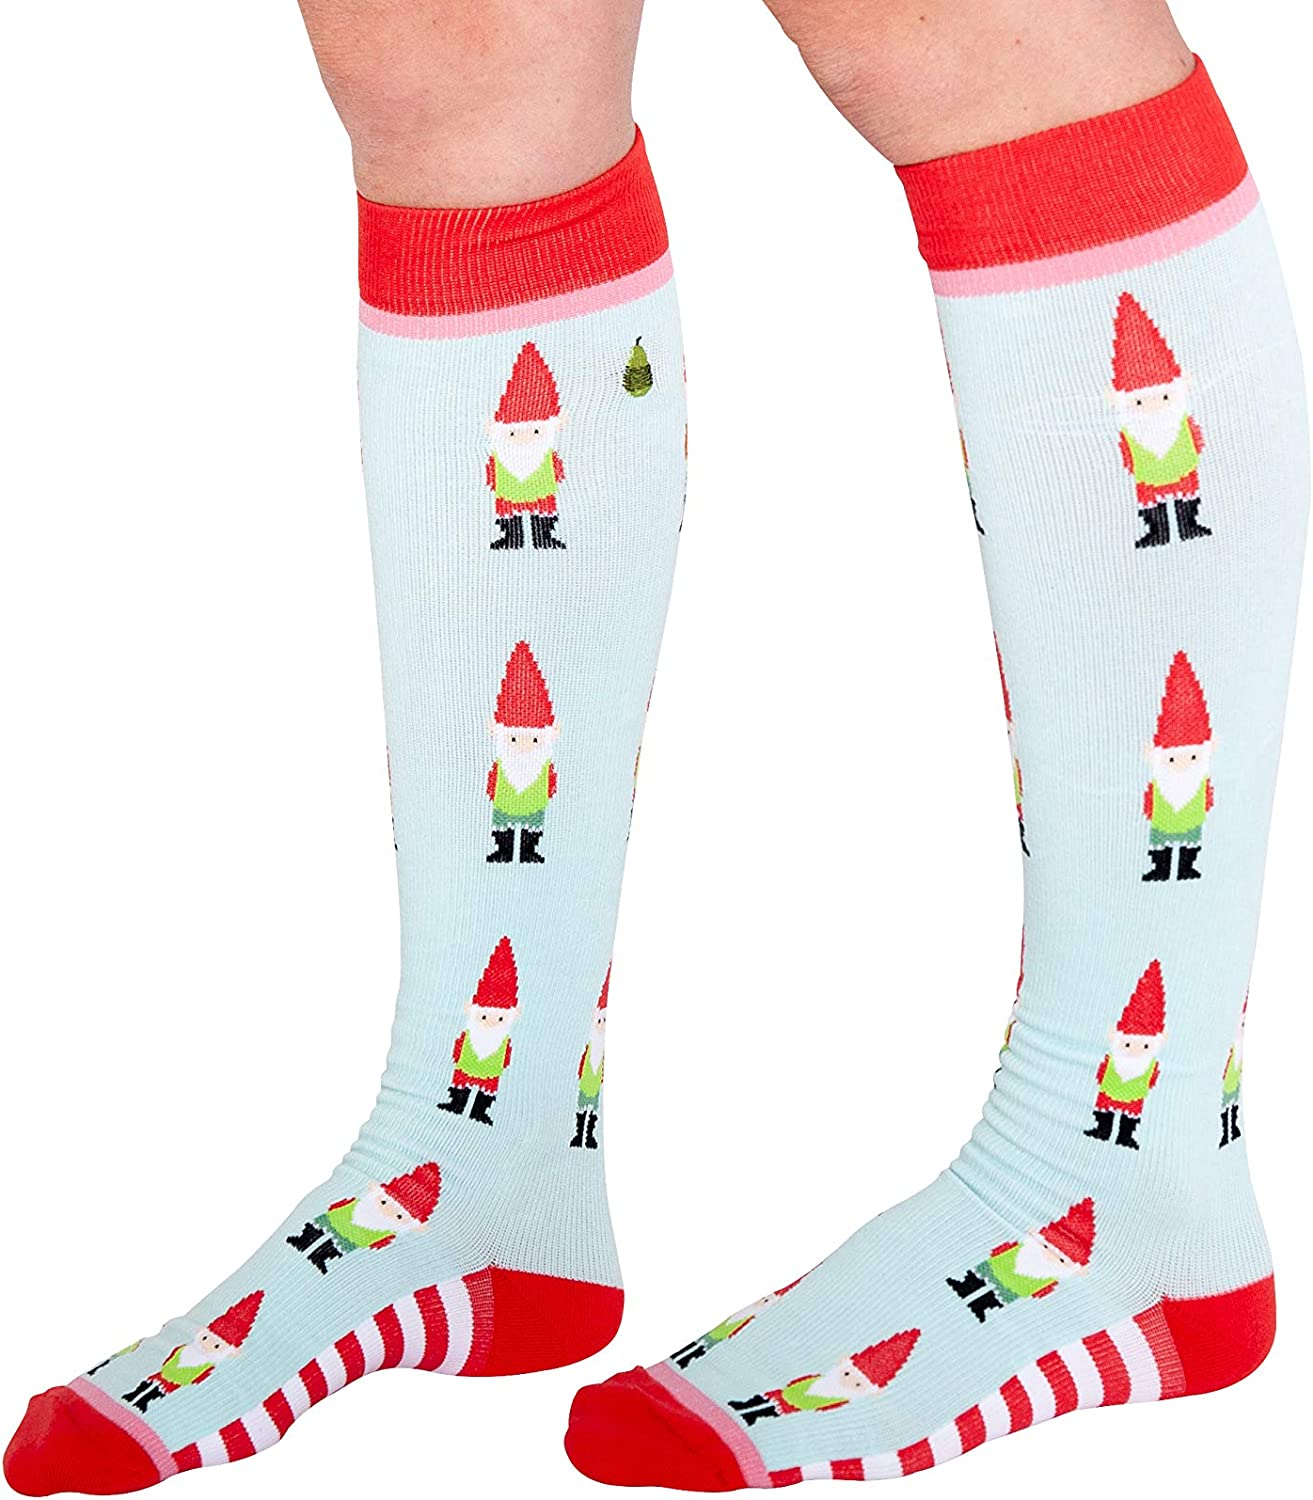 Woven Pear Safety and trust Max 79% OFF Compression Socks